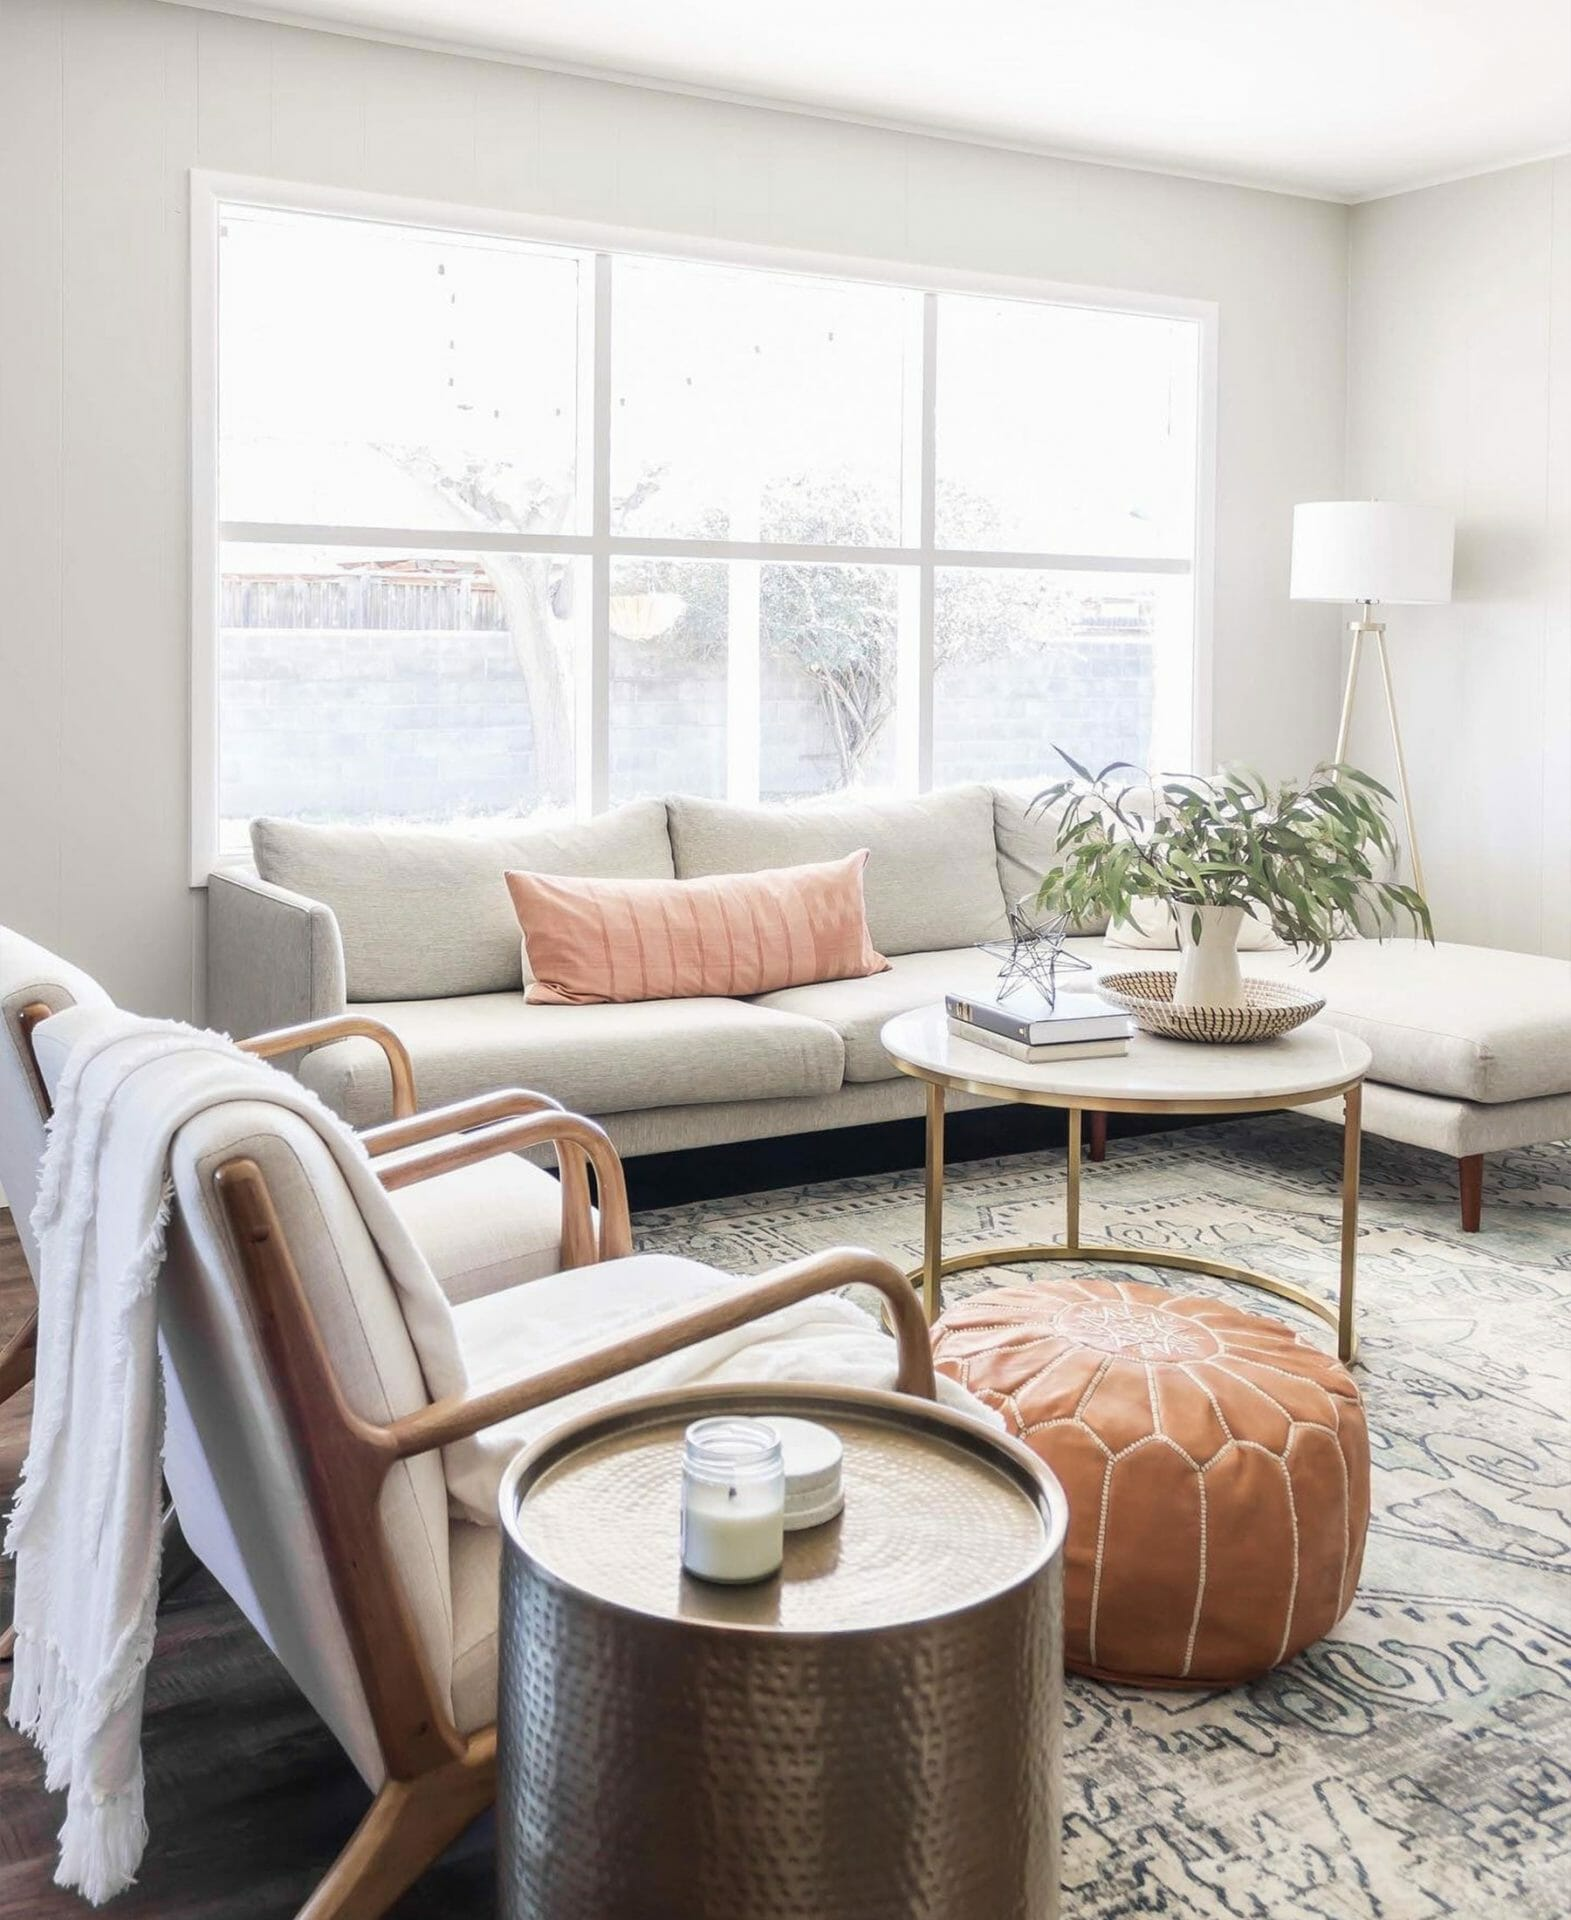 A gray sectional sofa sits in front of a large window in this bright space.